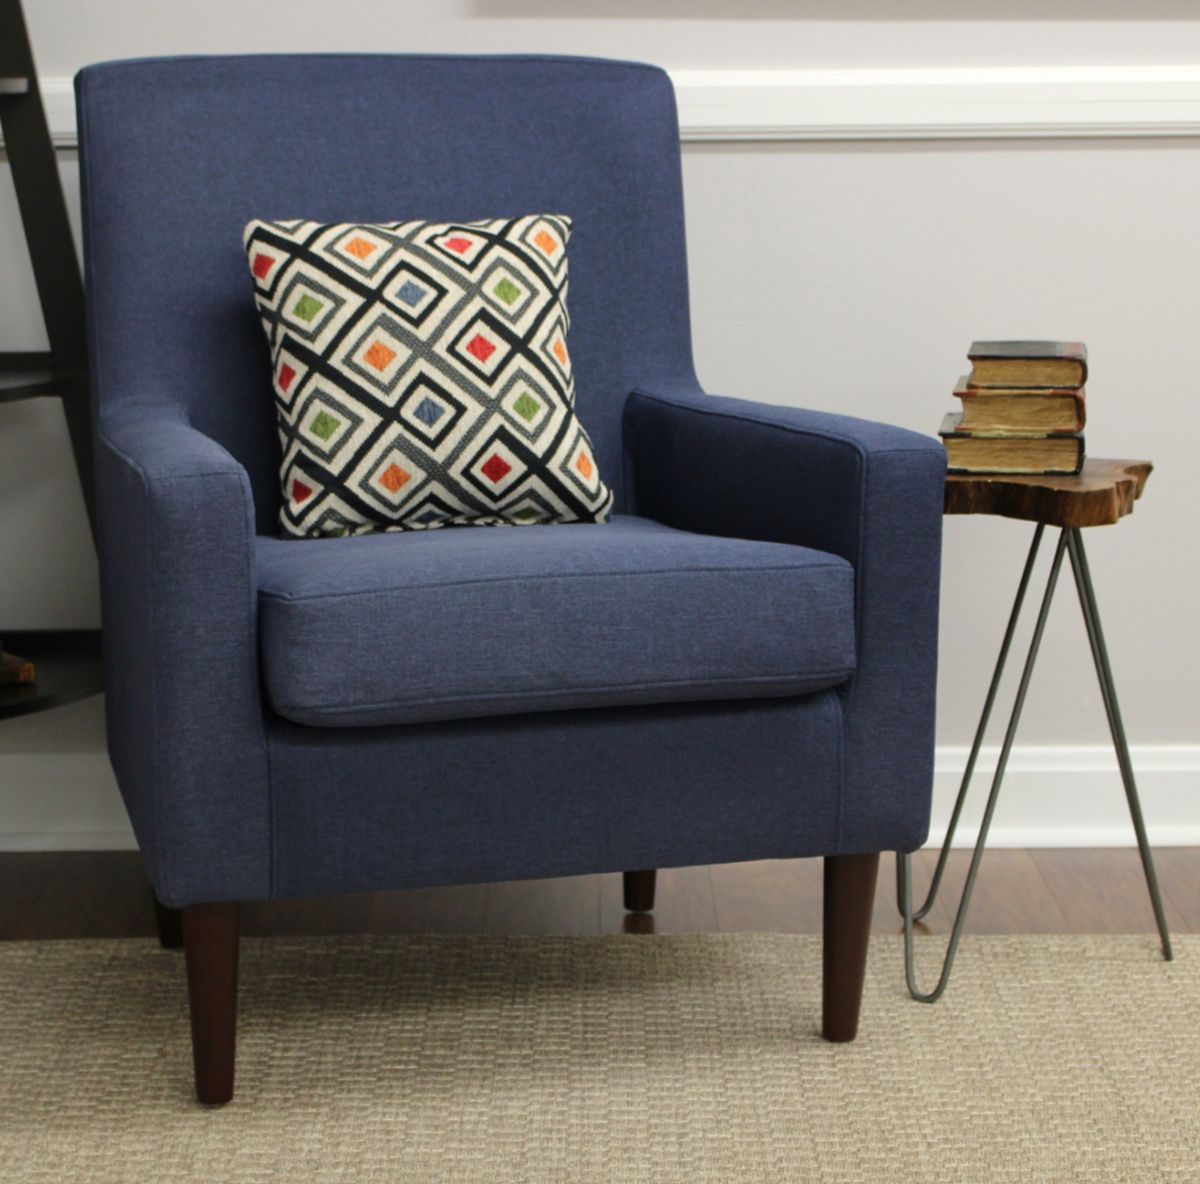 An Accent In Navy Furniture Chair Armchair #navy #living #room #chair